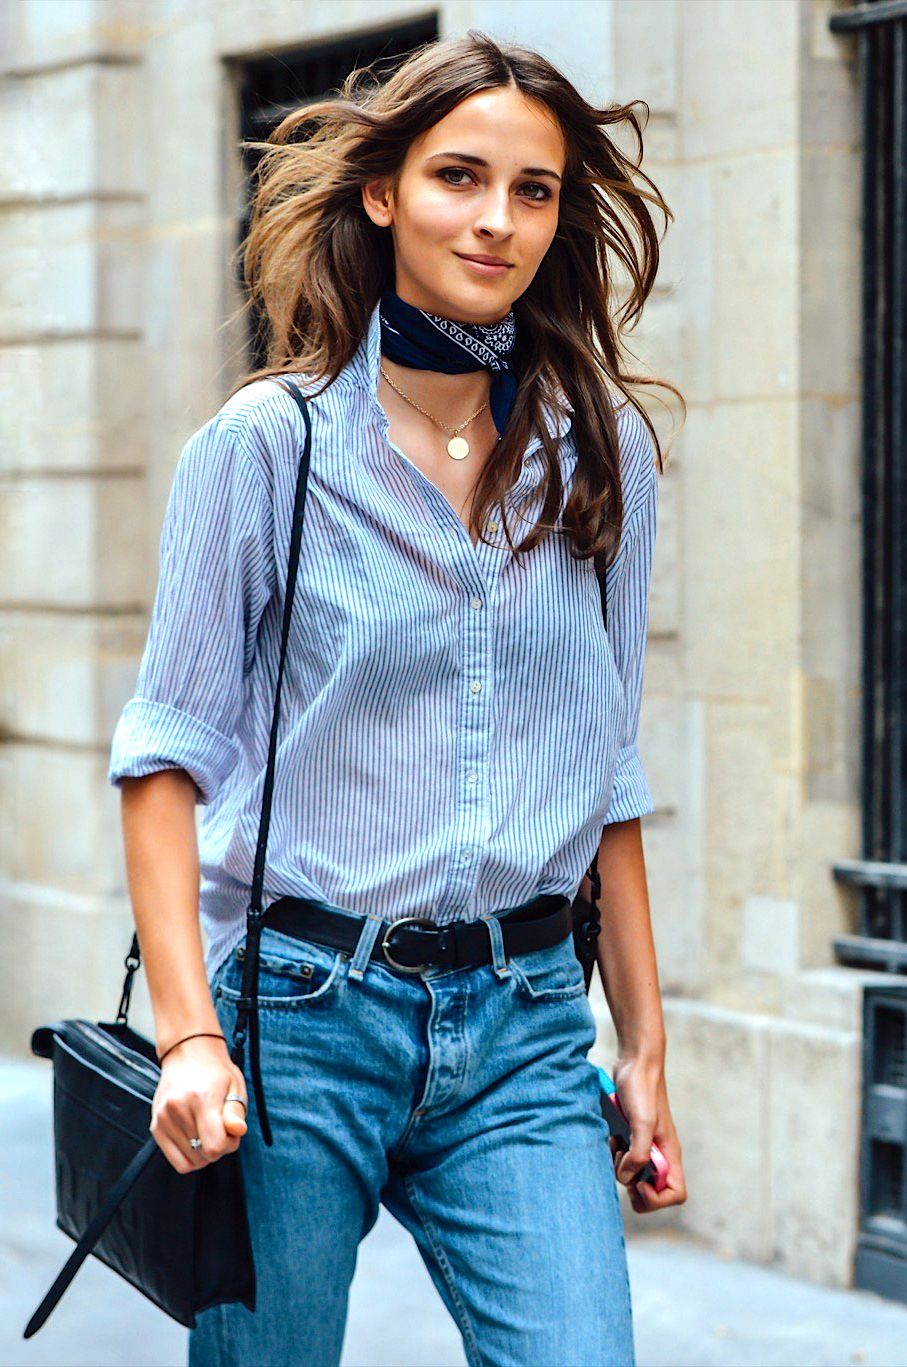 Add a bandana as a scarf to any outfit to make it a little western